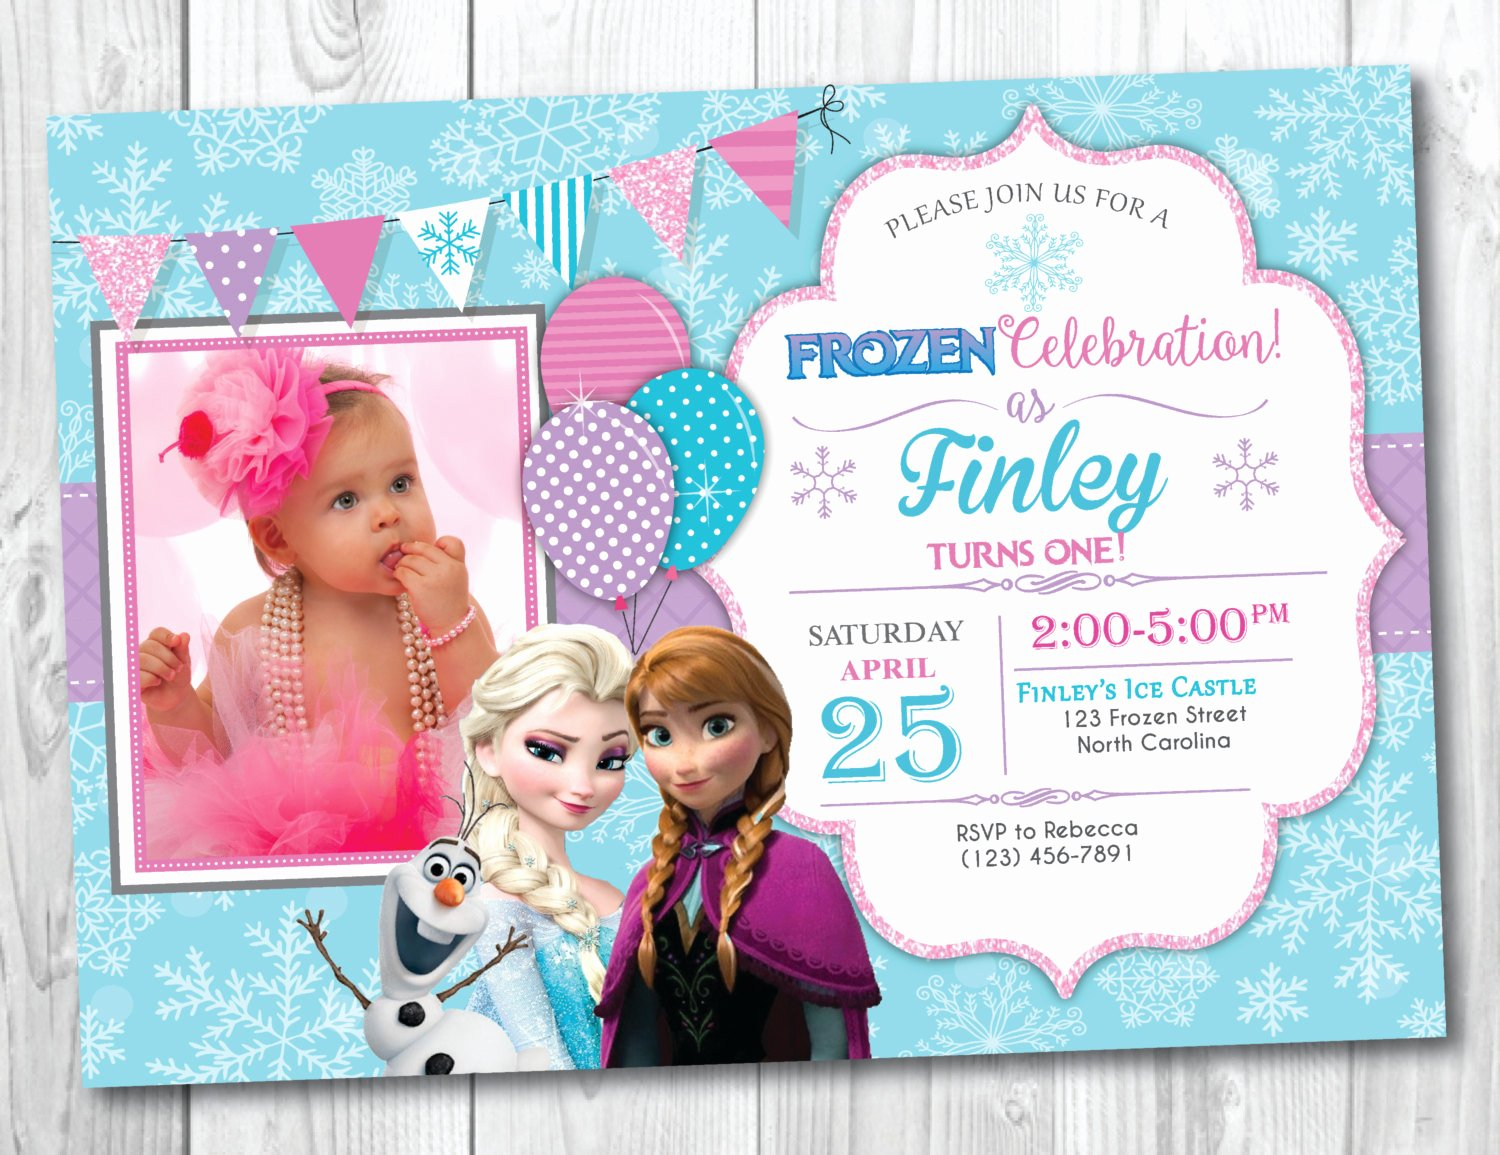 Frozen Birthday Invitations Wording Awesome Frozen Birthday Invitation Printable with Frozen